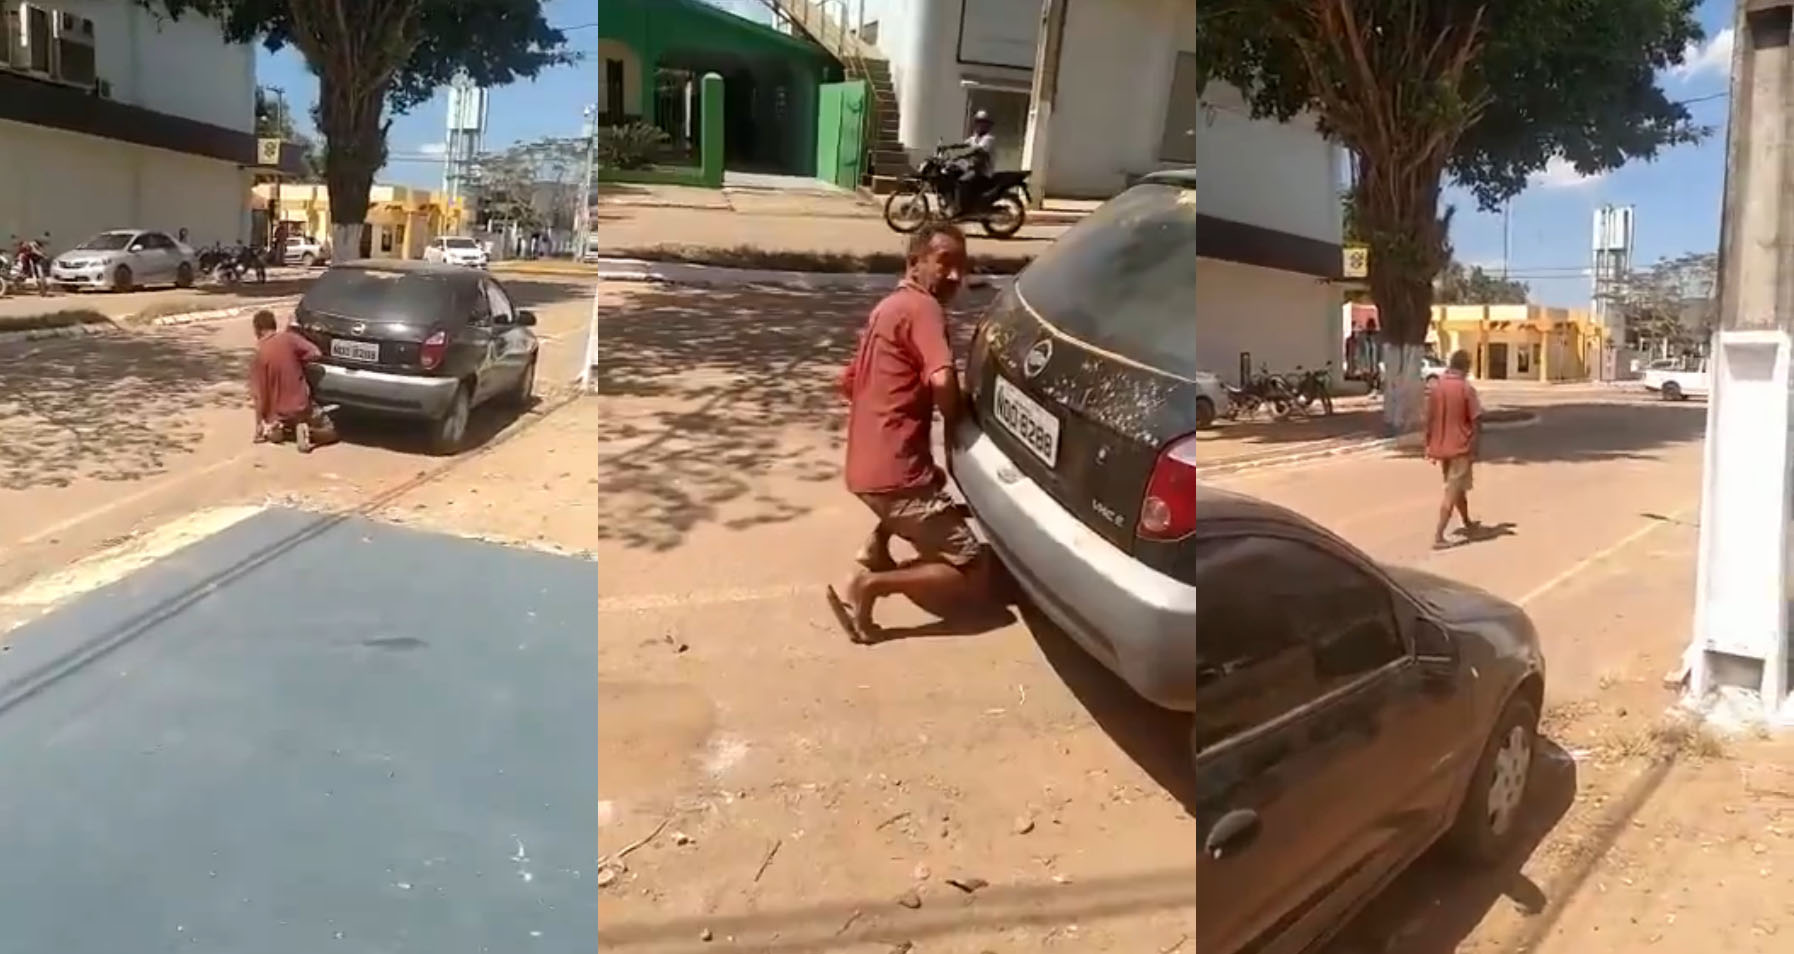 a man is caught making sweet love to the exhaust pipe of a car